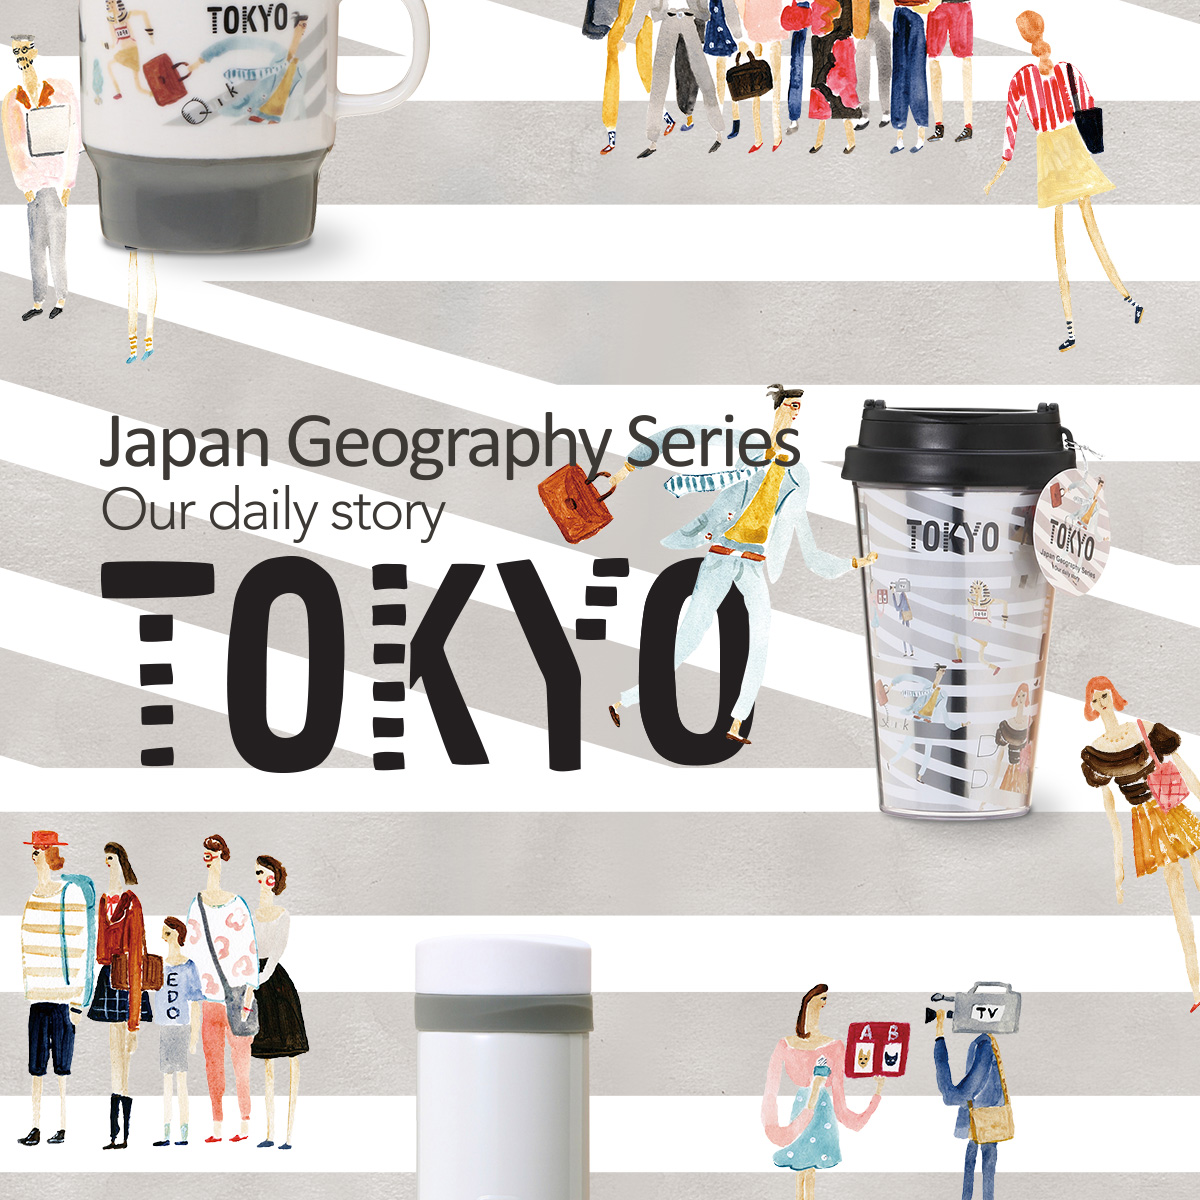 Japan Geography Series 東京